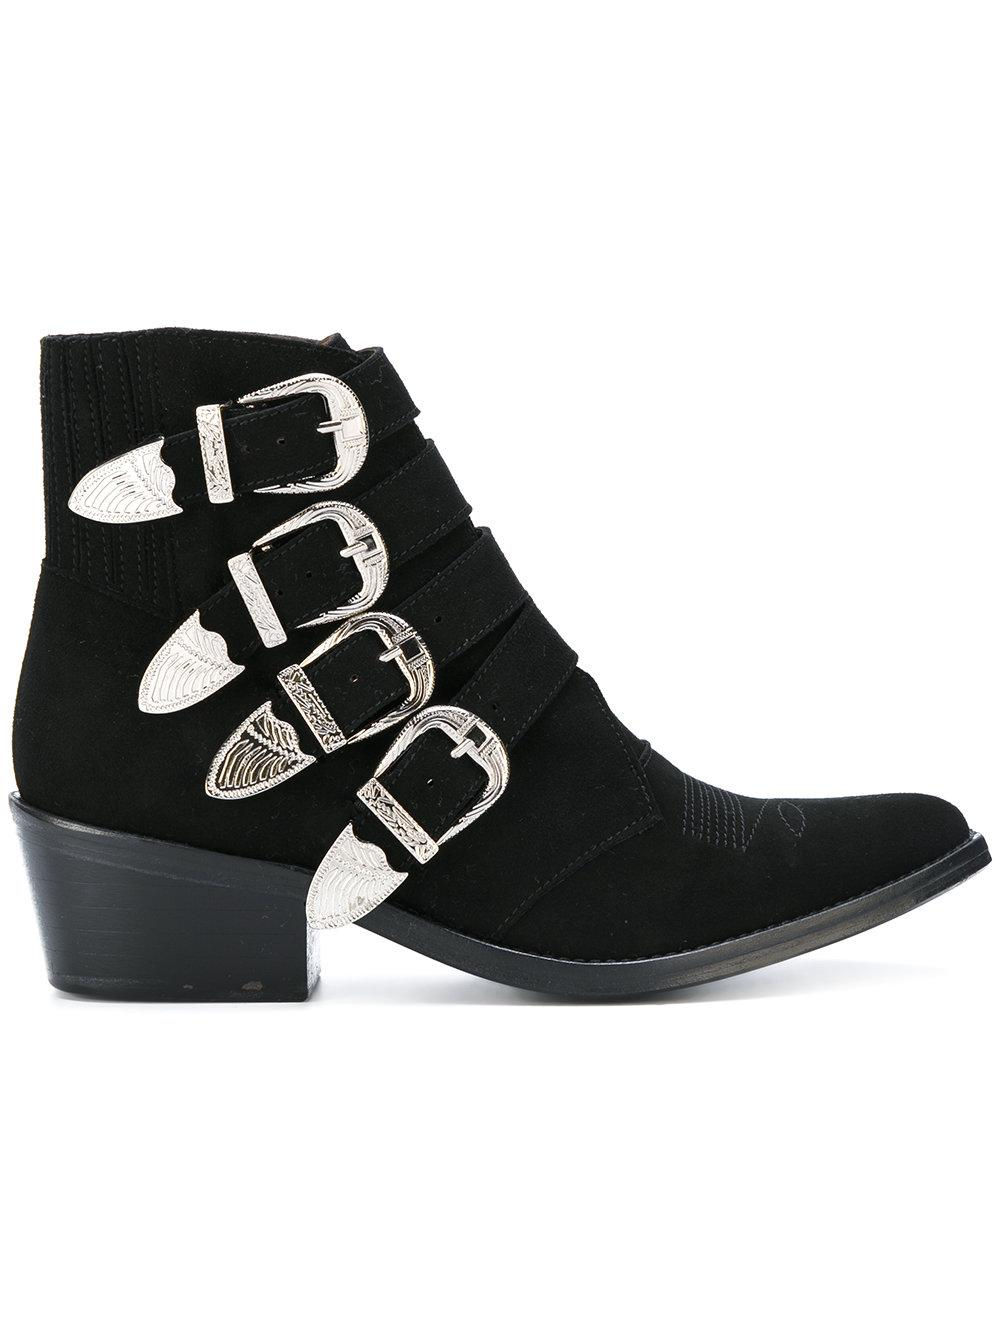 toga pulla buckle detail ankle boots in black lyst